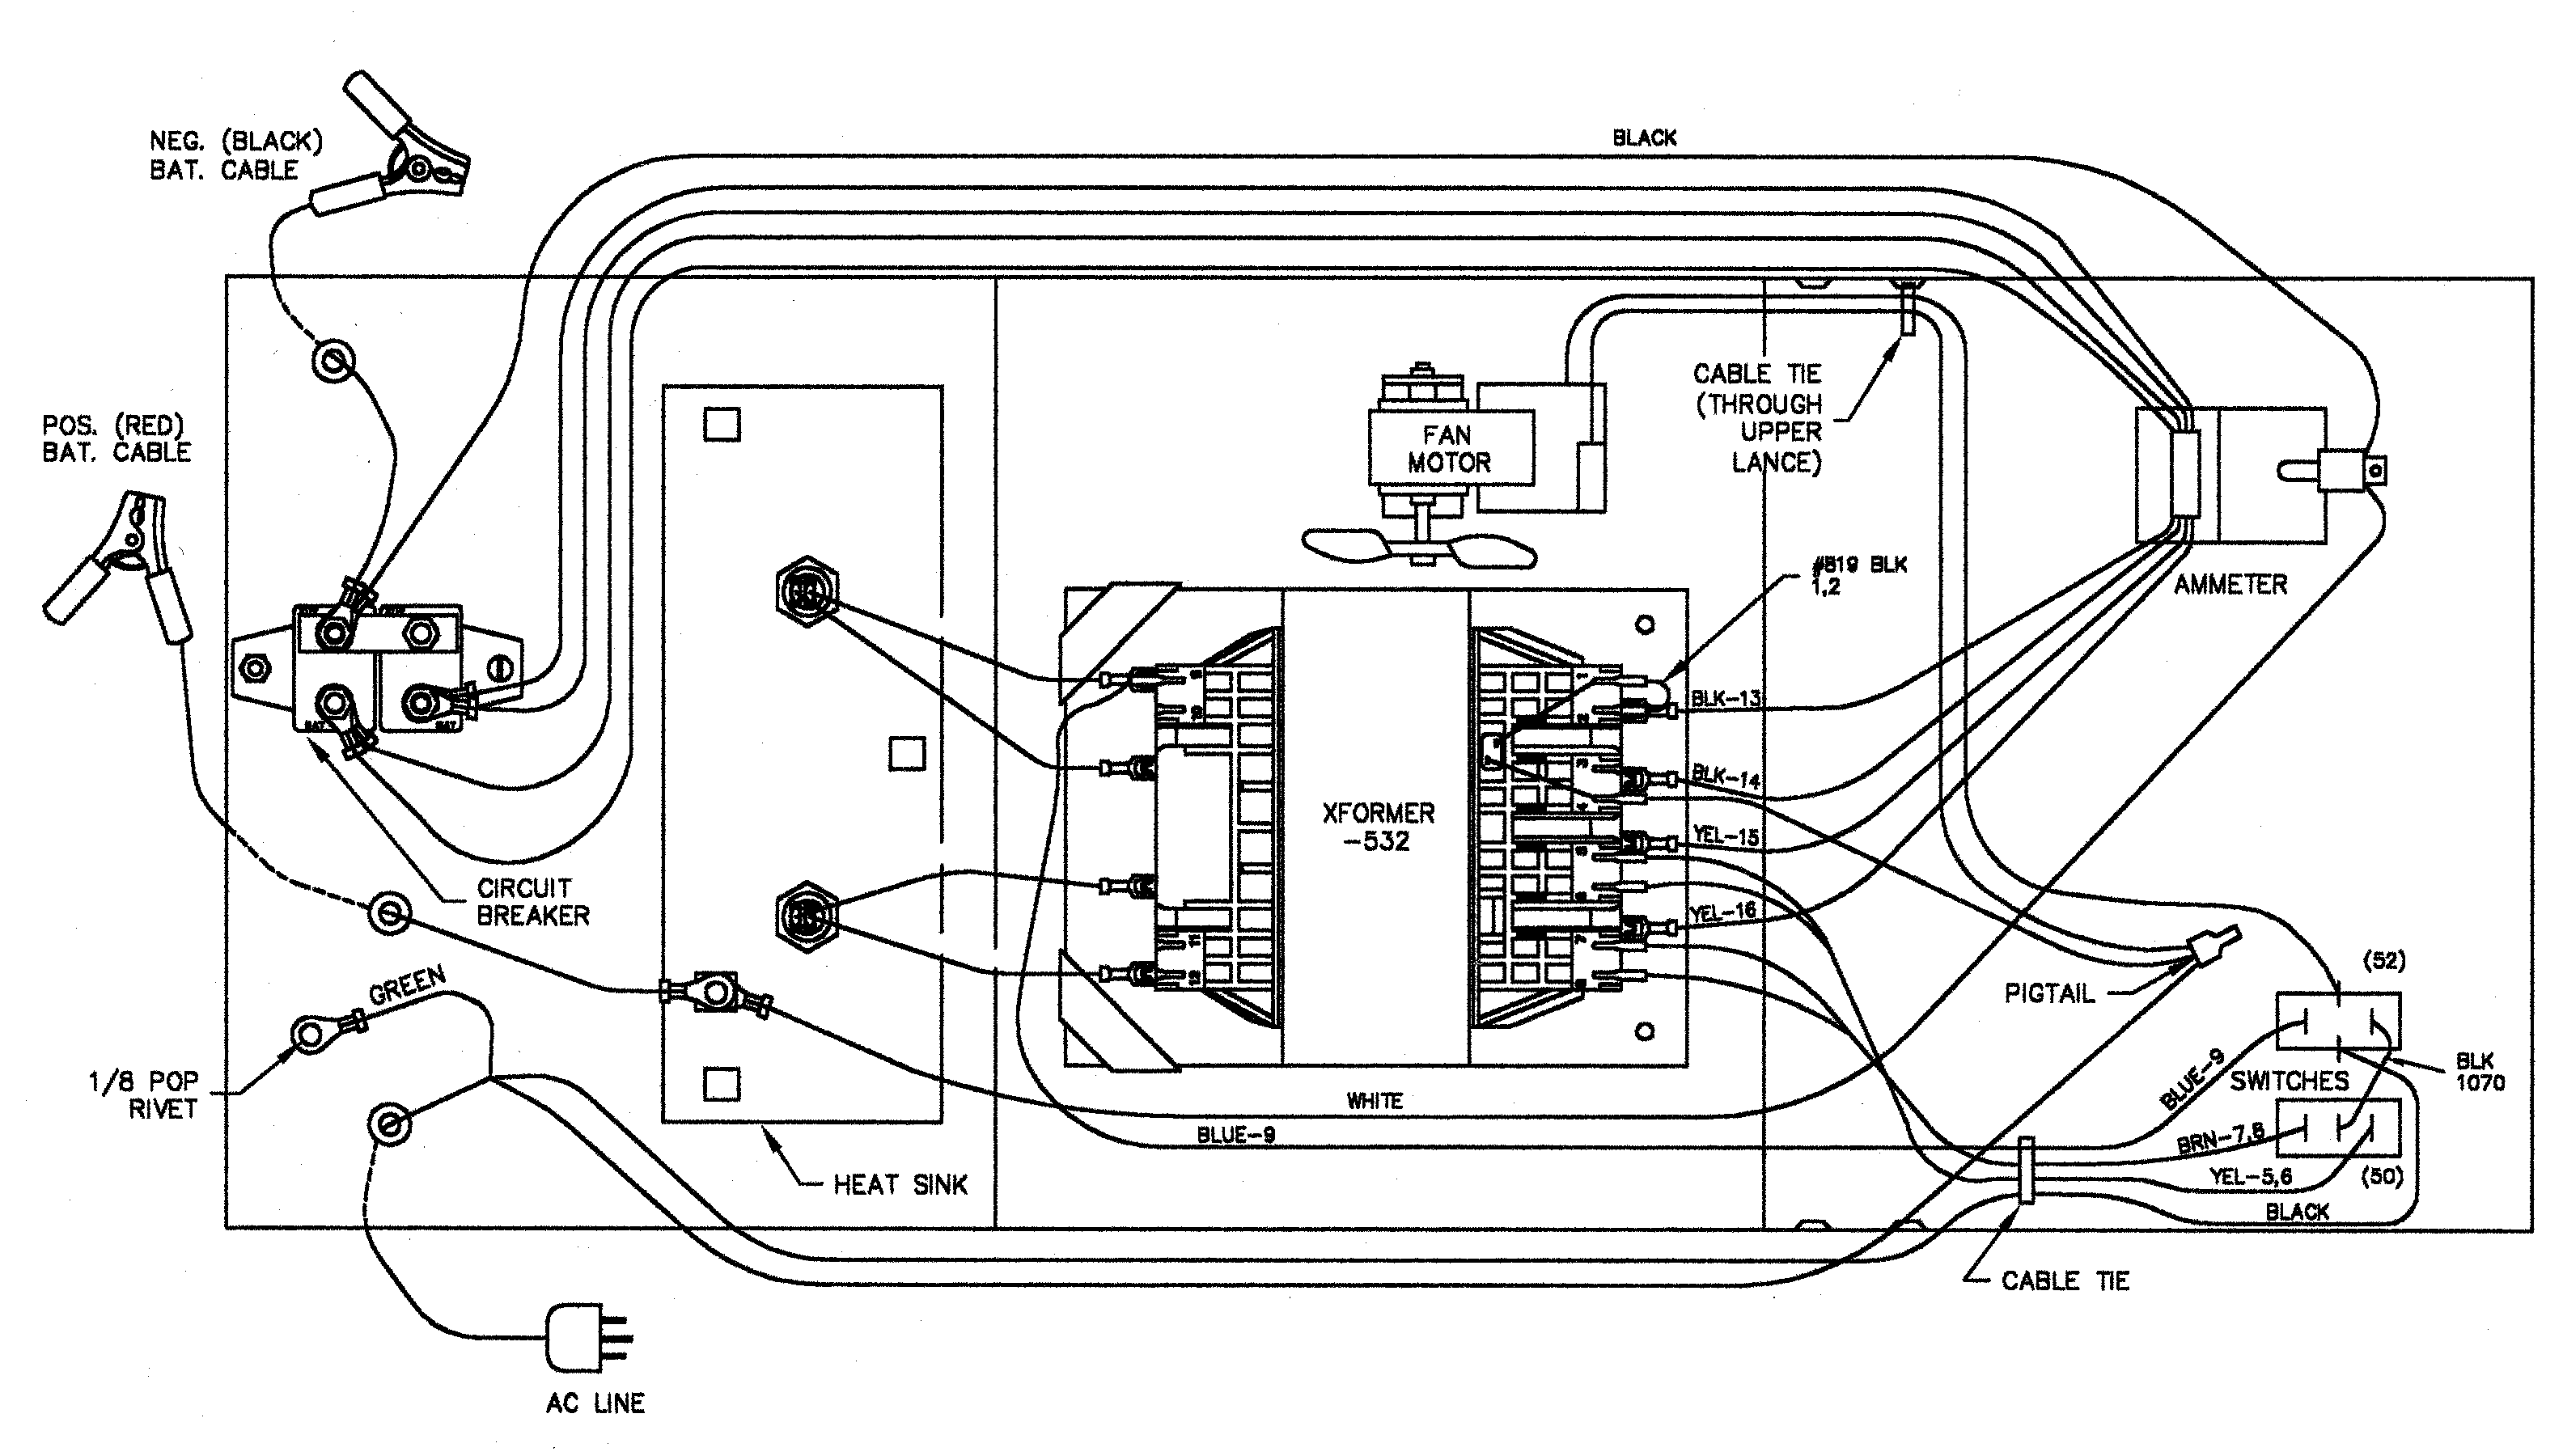 On Board Charger Wiring Diagram